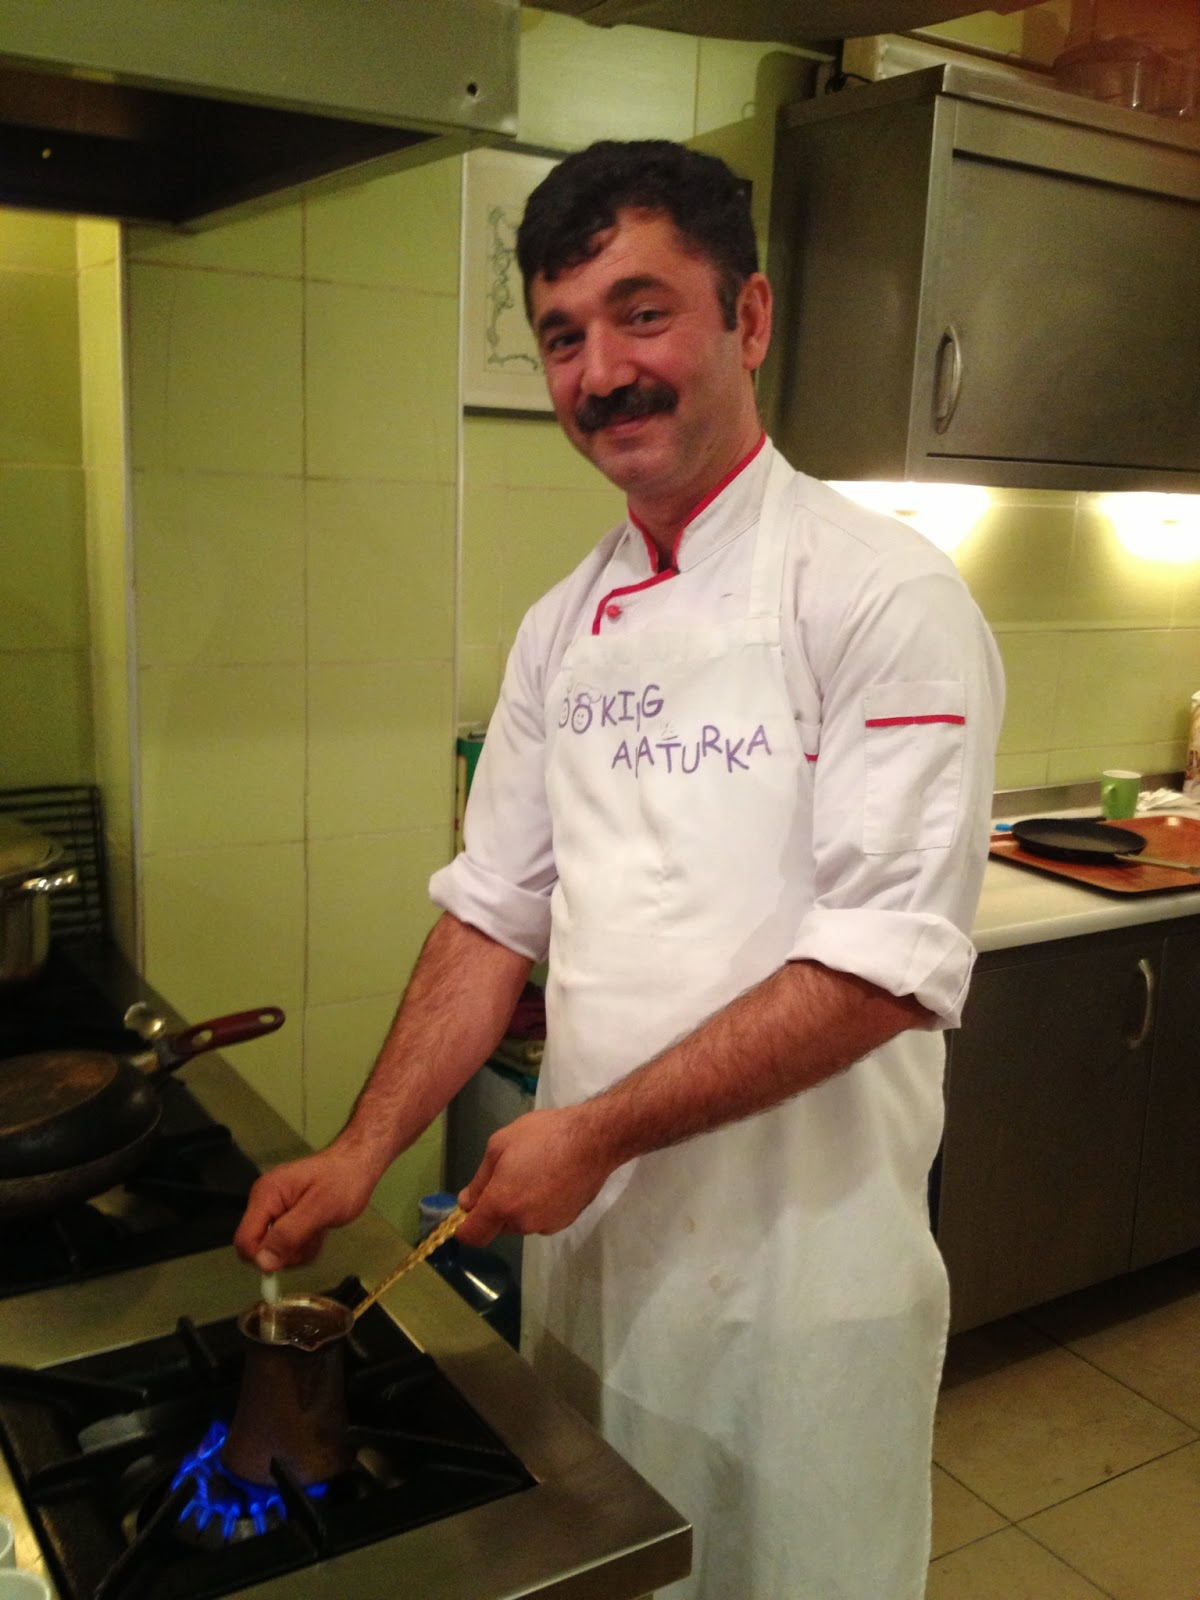 Istanbul - One of our instructors makes Turkish coffee